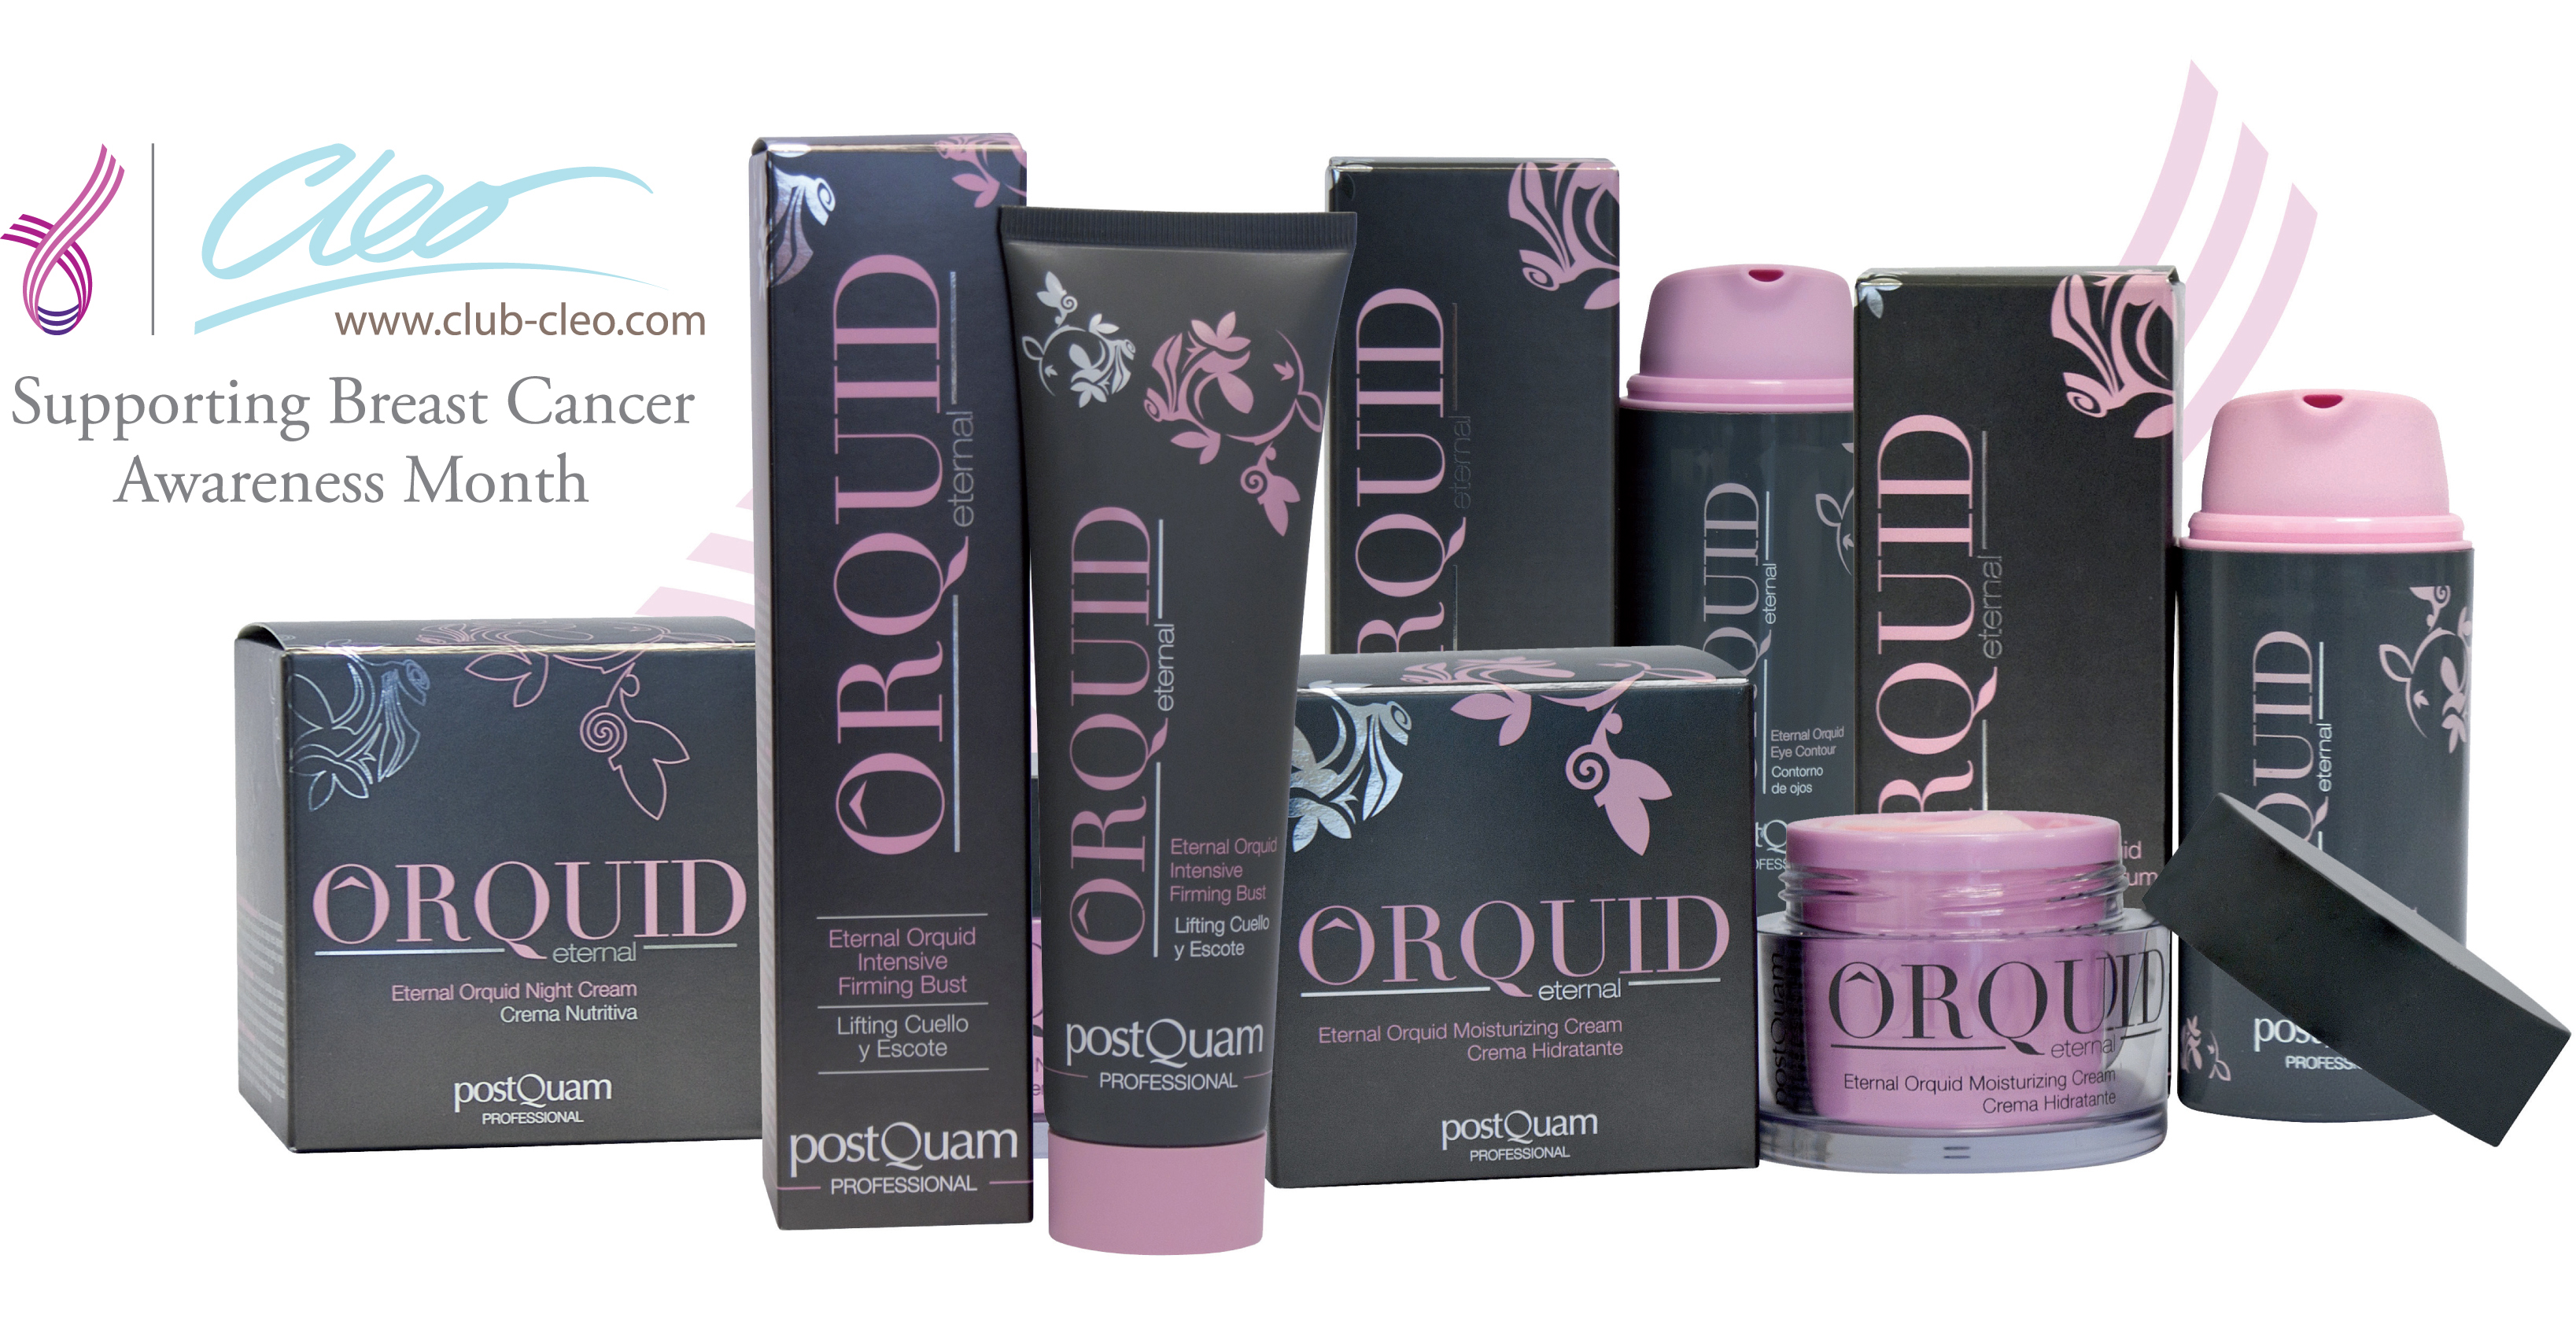 Club Cleo is donating 25% of all sales from the Orquid Eternal Skincare Range throughout October to Breast Cancer Care